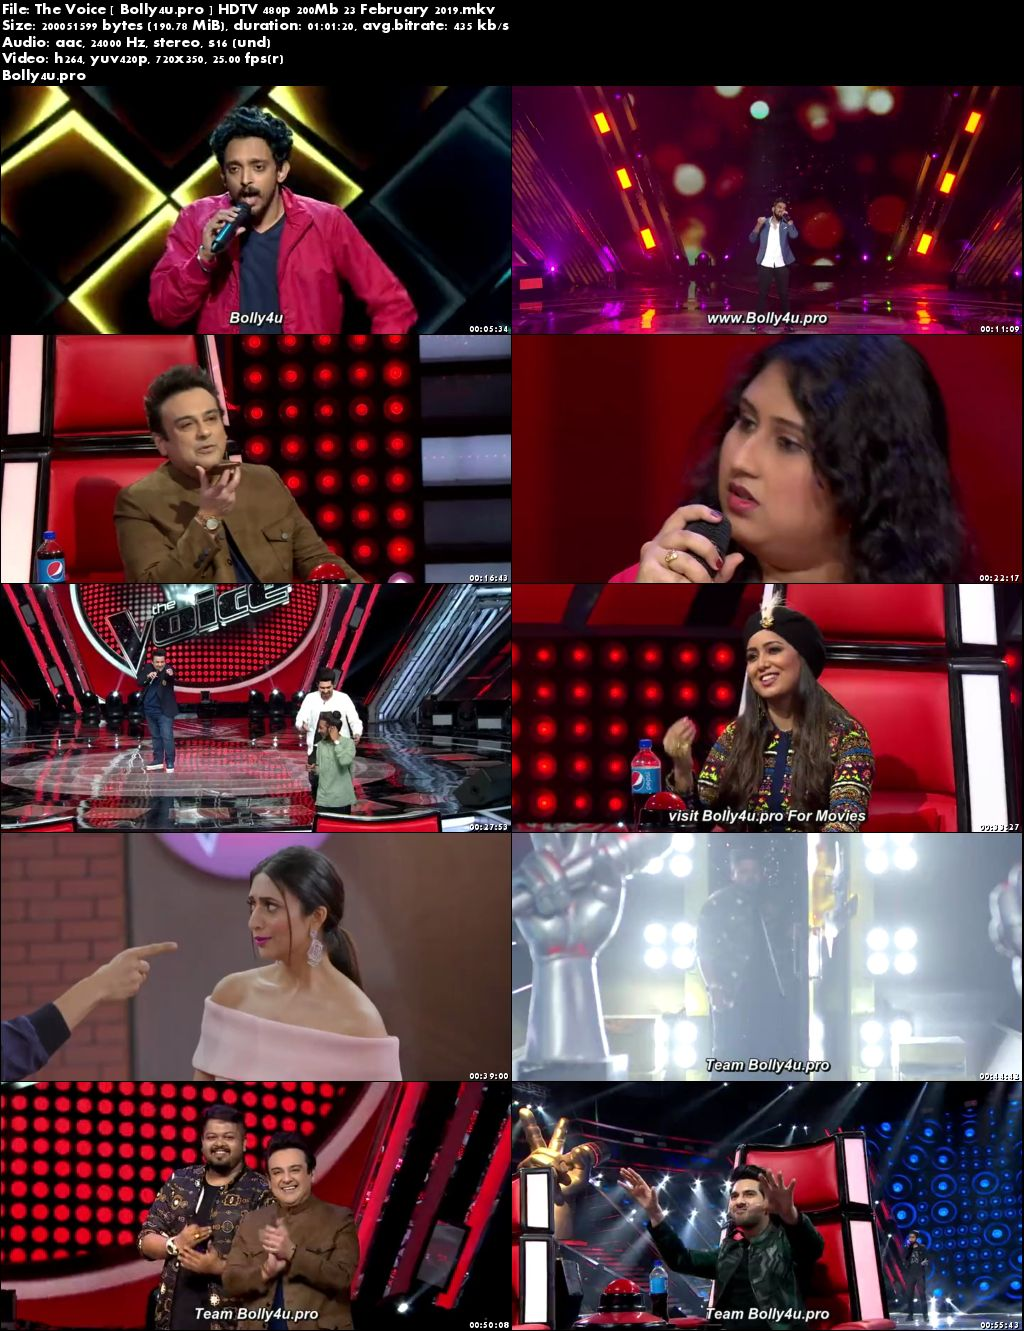 The Voice HDTV 480p 200Mb 23 February 2019 Download